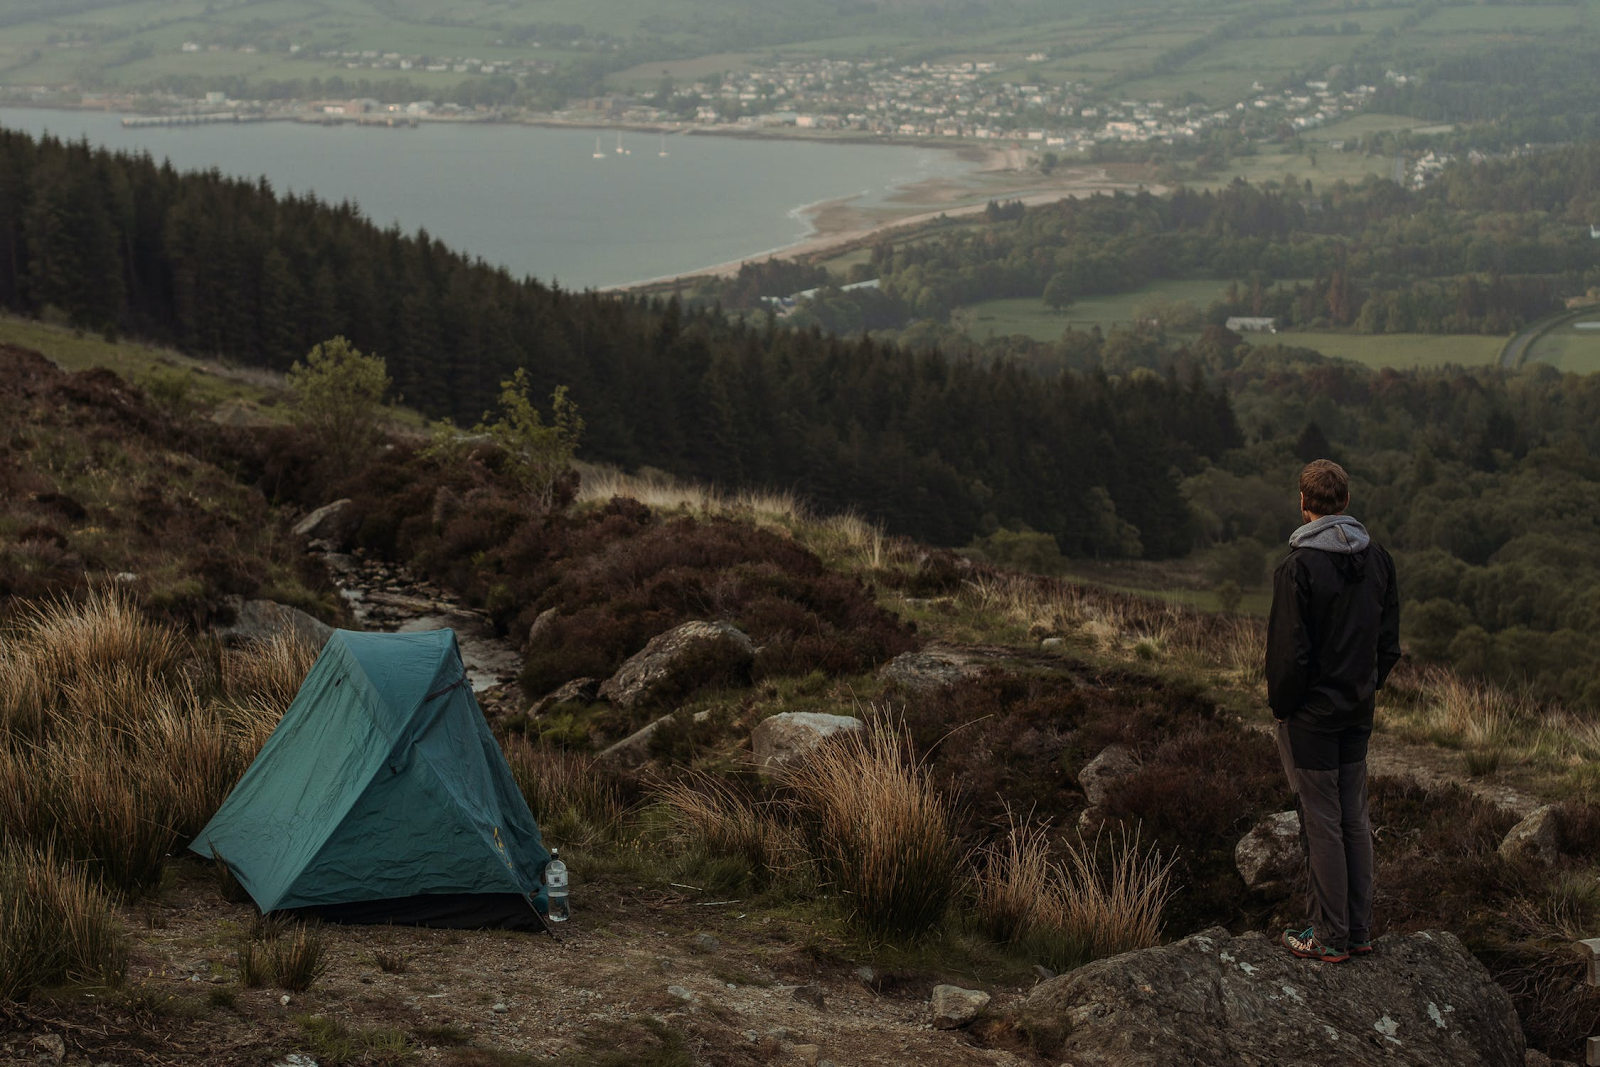 An image showing the beautiful scenes of nature you'd experience while camping.